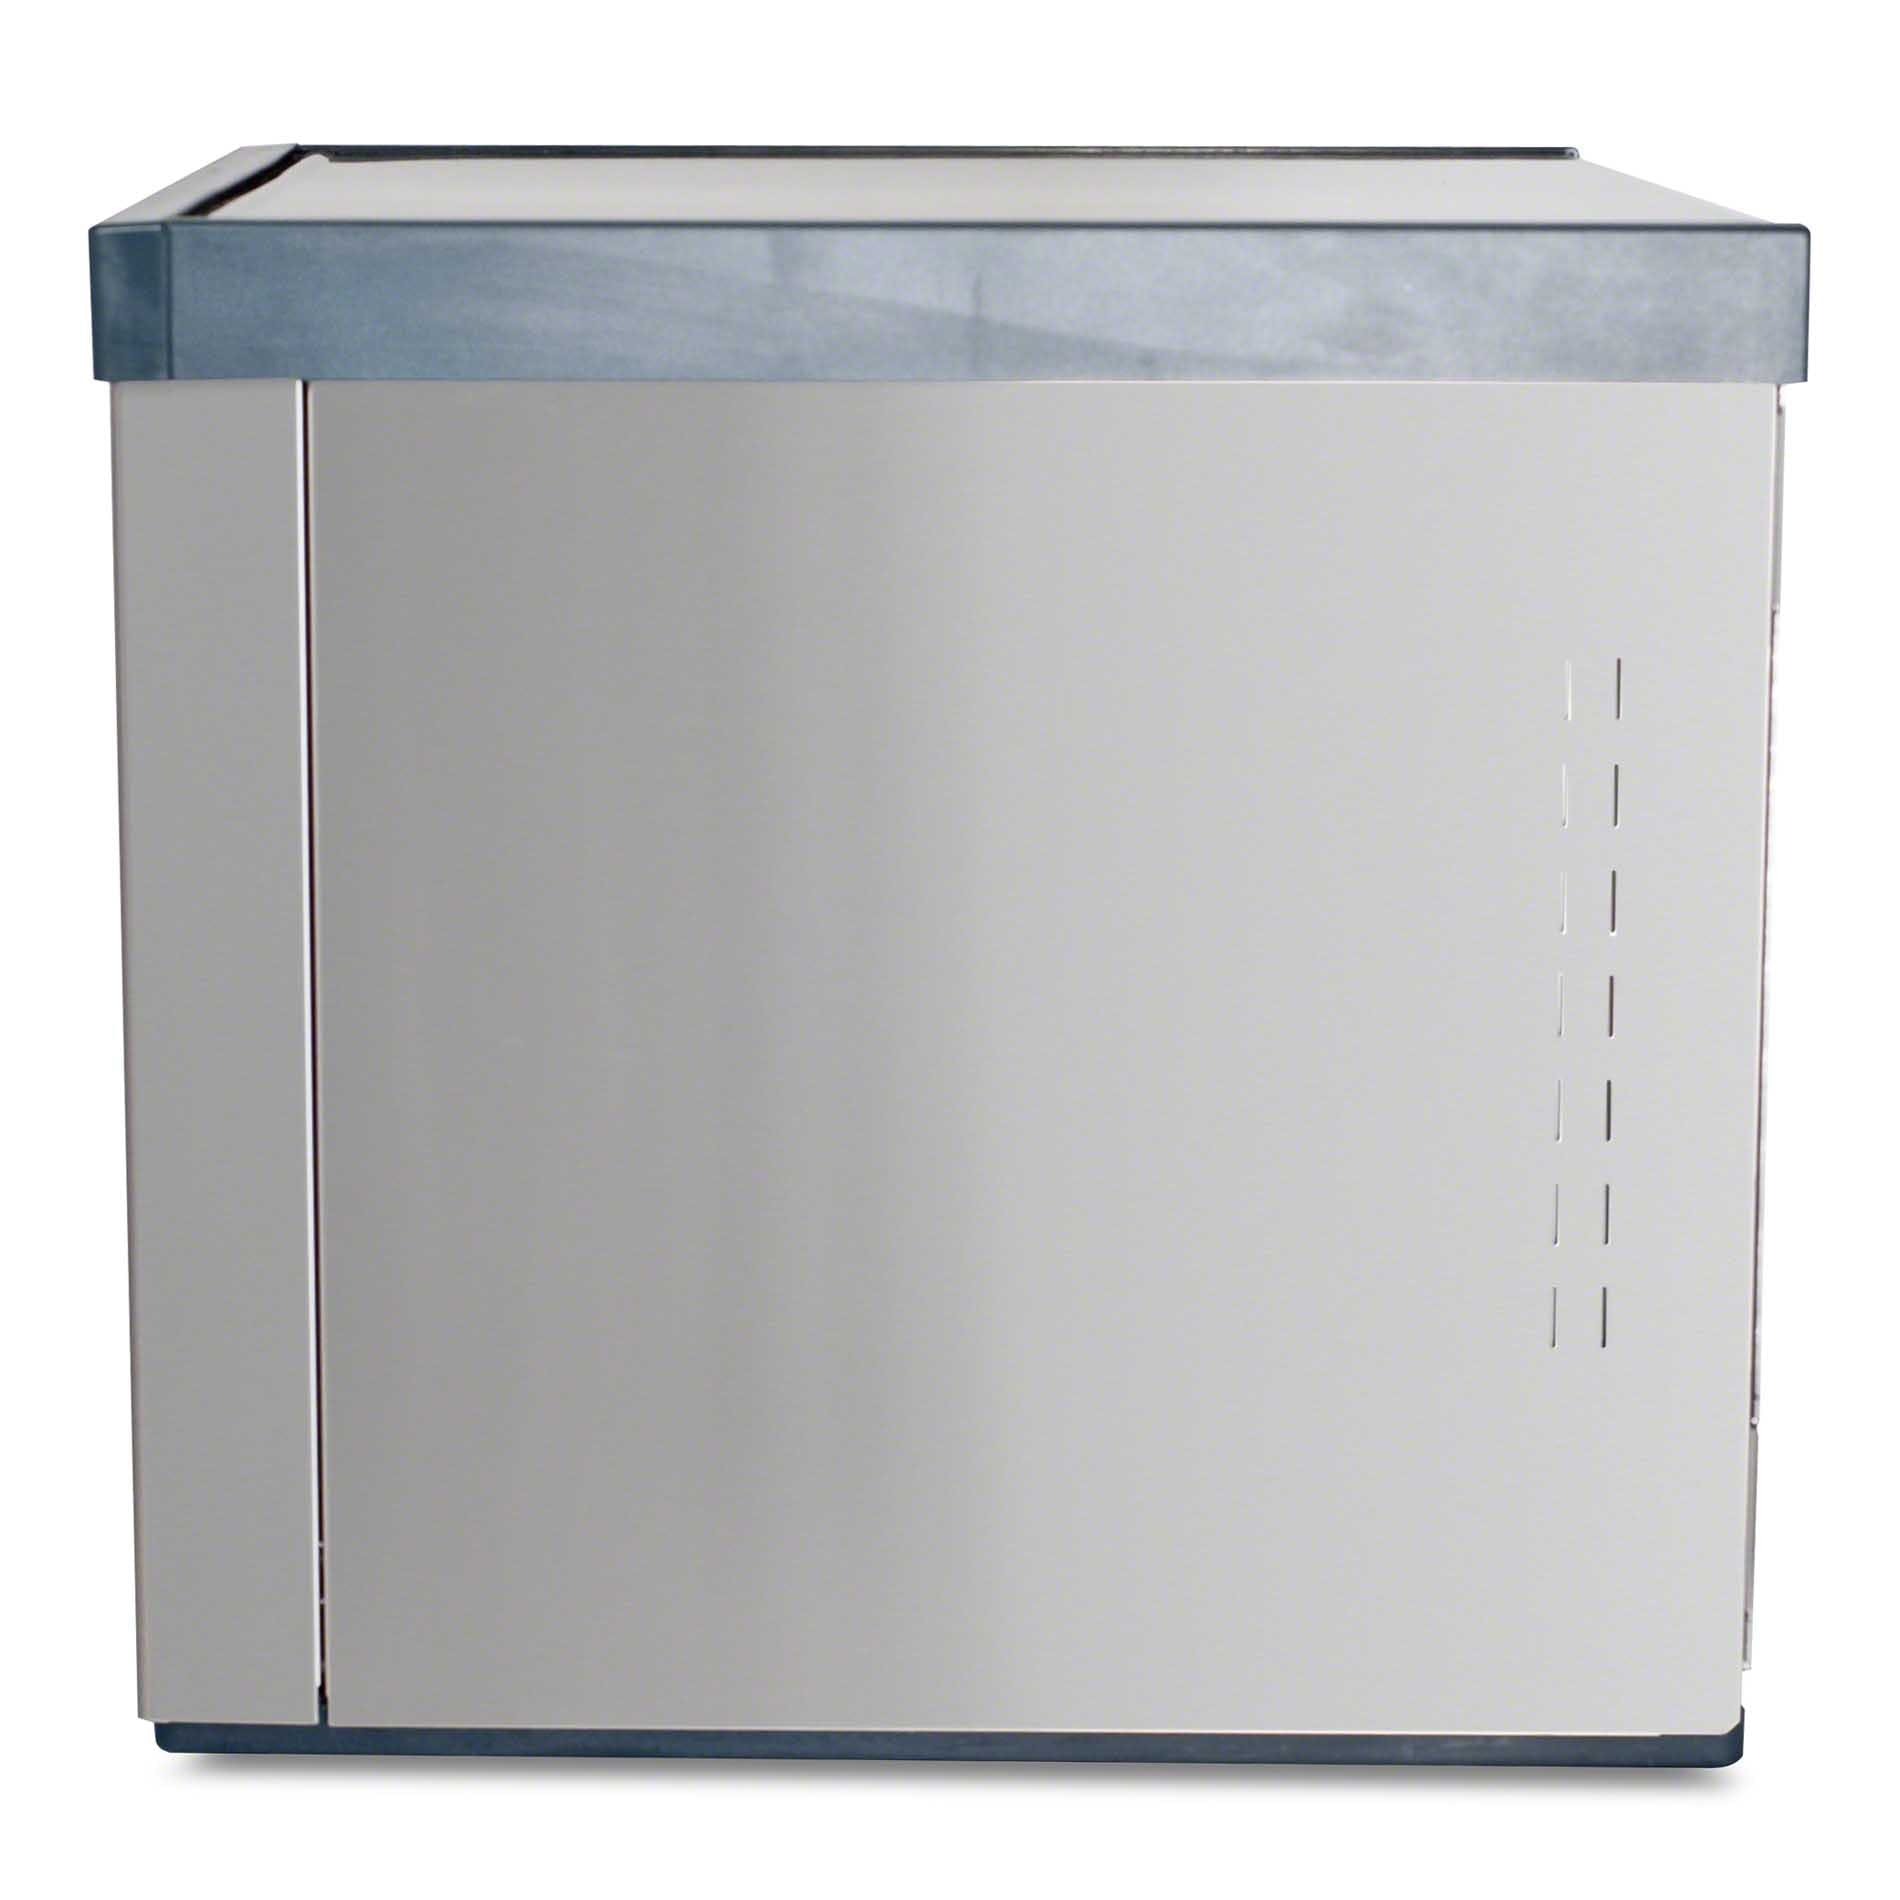 Scotsman - C0530MR-1A 511 lb Full Size Cube Ice Machine - Prodigy Series Ice machine sold by Food Service Warehouse